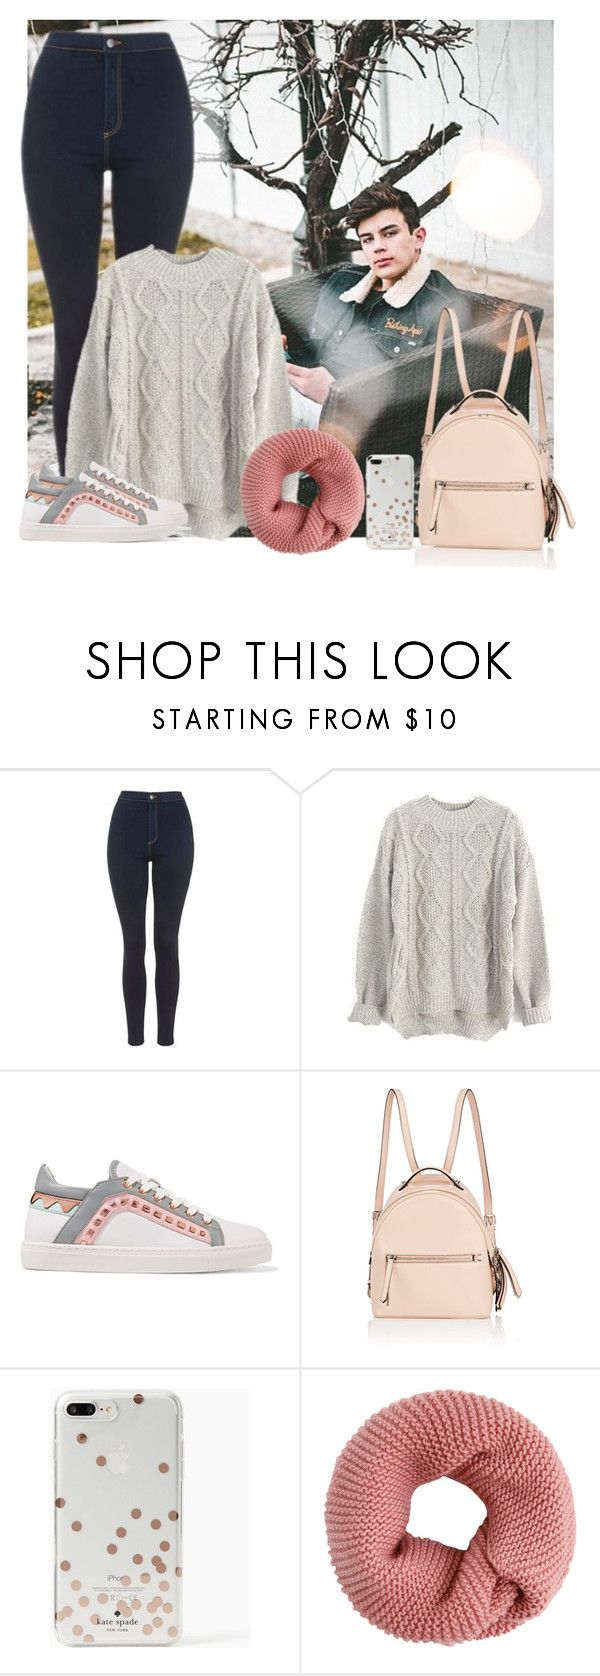 """Hayes Grier"" by hxrrybae ❤ liked on Polyvore featuring Topshop, Sophia Webster, Fendi, Kate Spade, Winter, outfit, girl, Hayes and magcon"